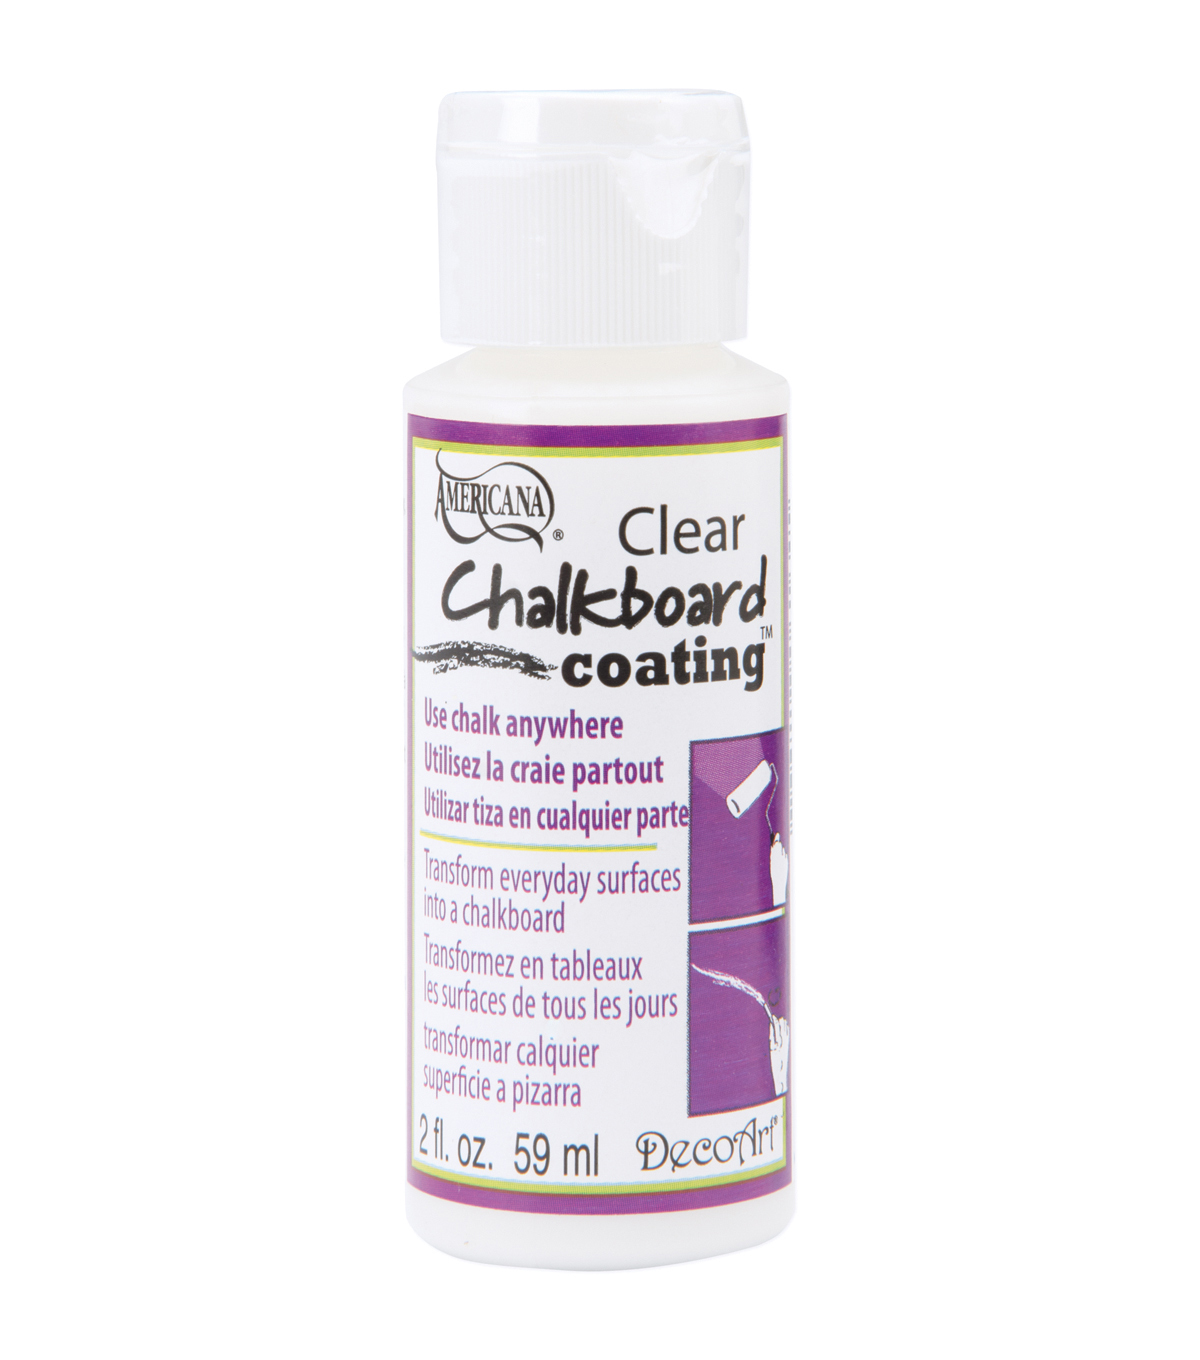 DecoArt Americana Chalkboard Clear Coating-2oz